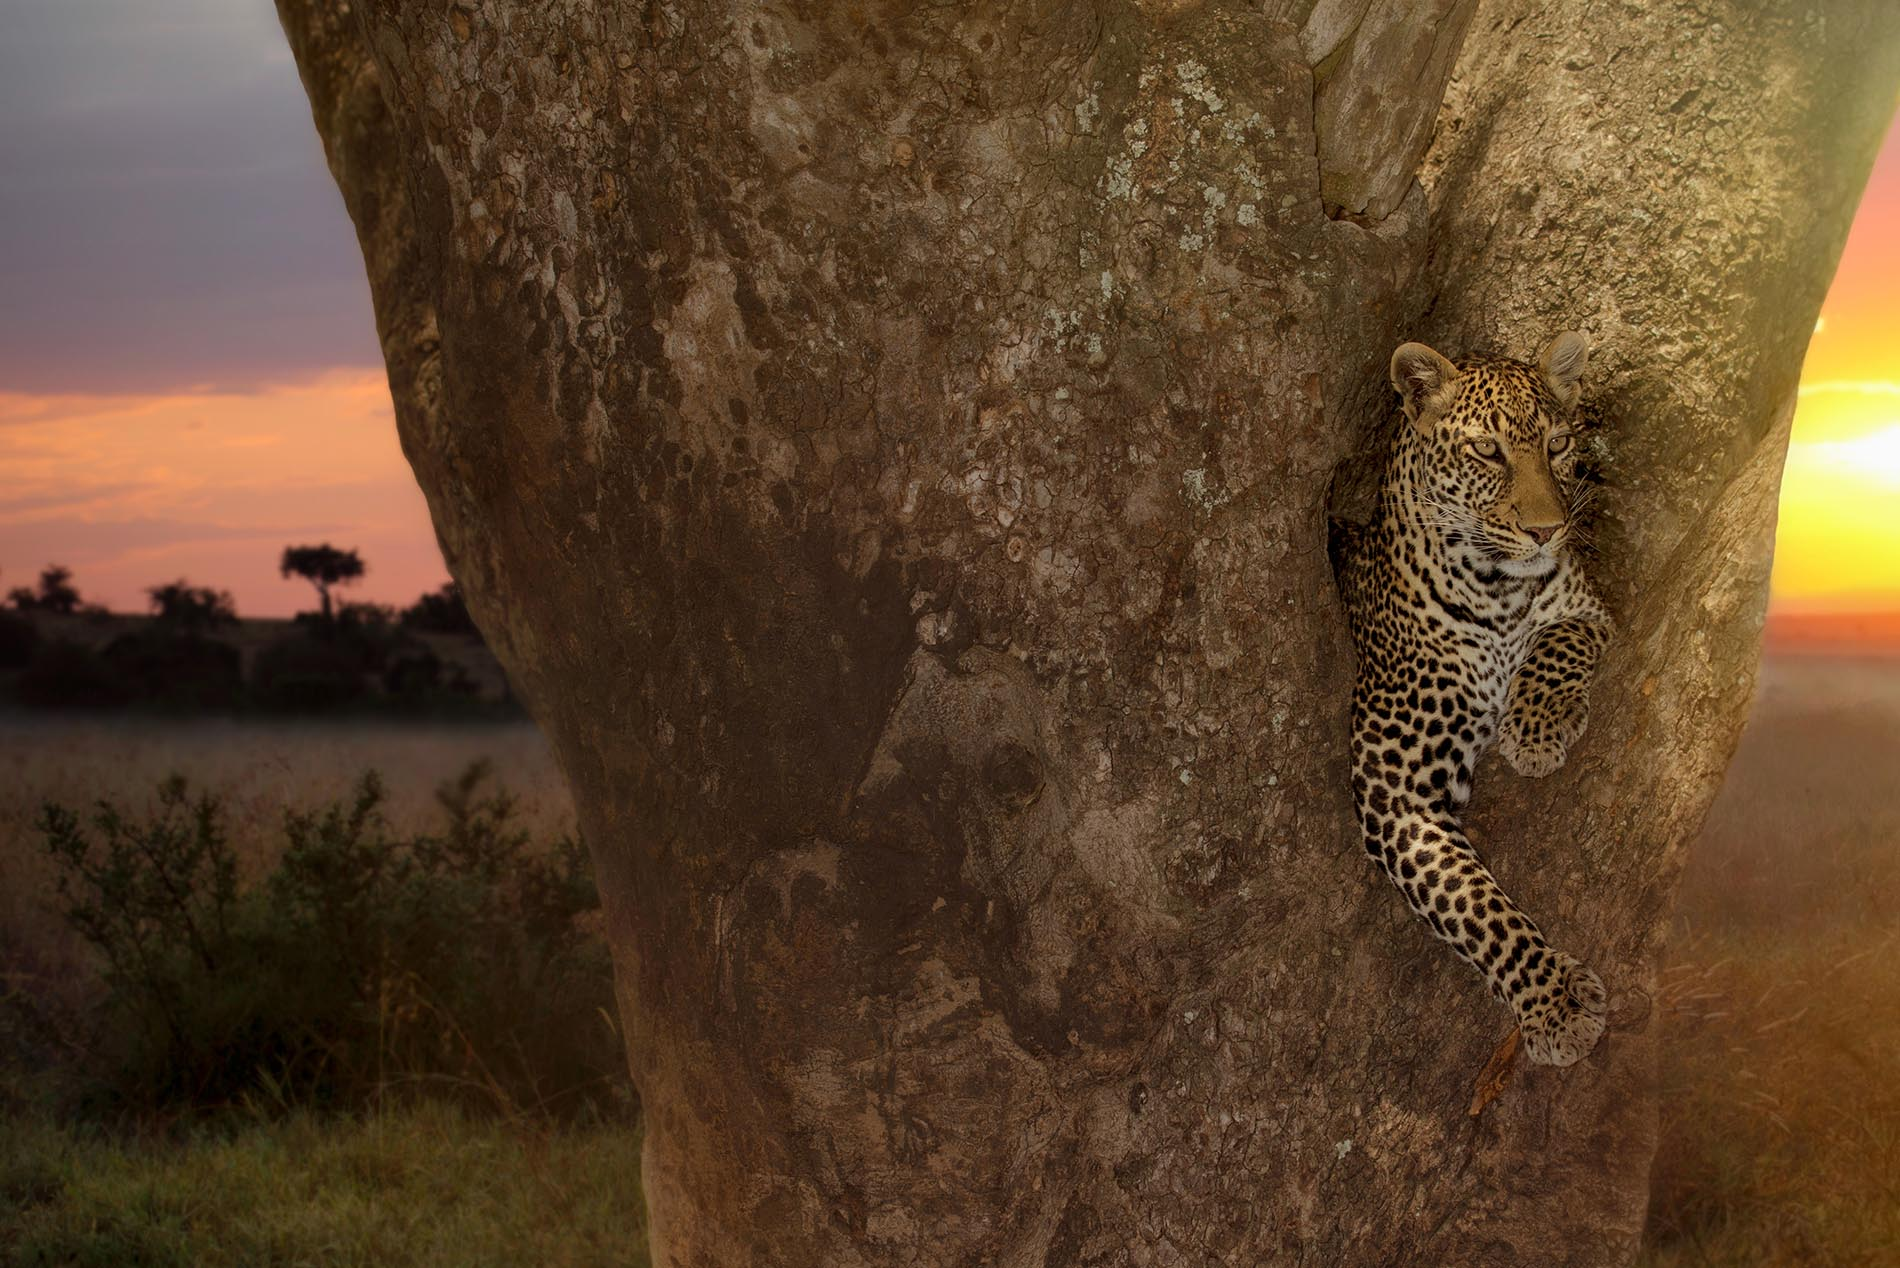 The most beautiful leopard on earth